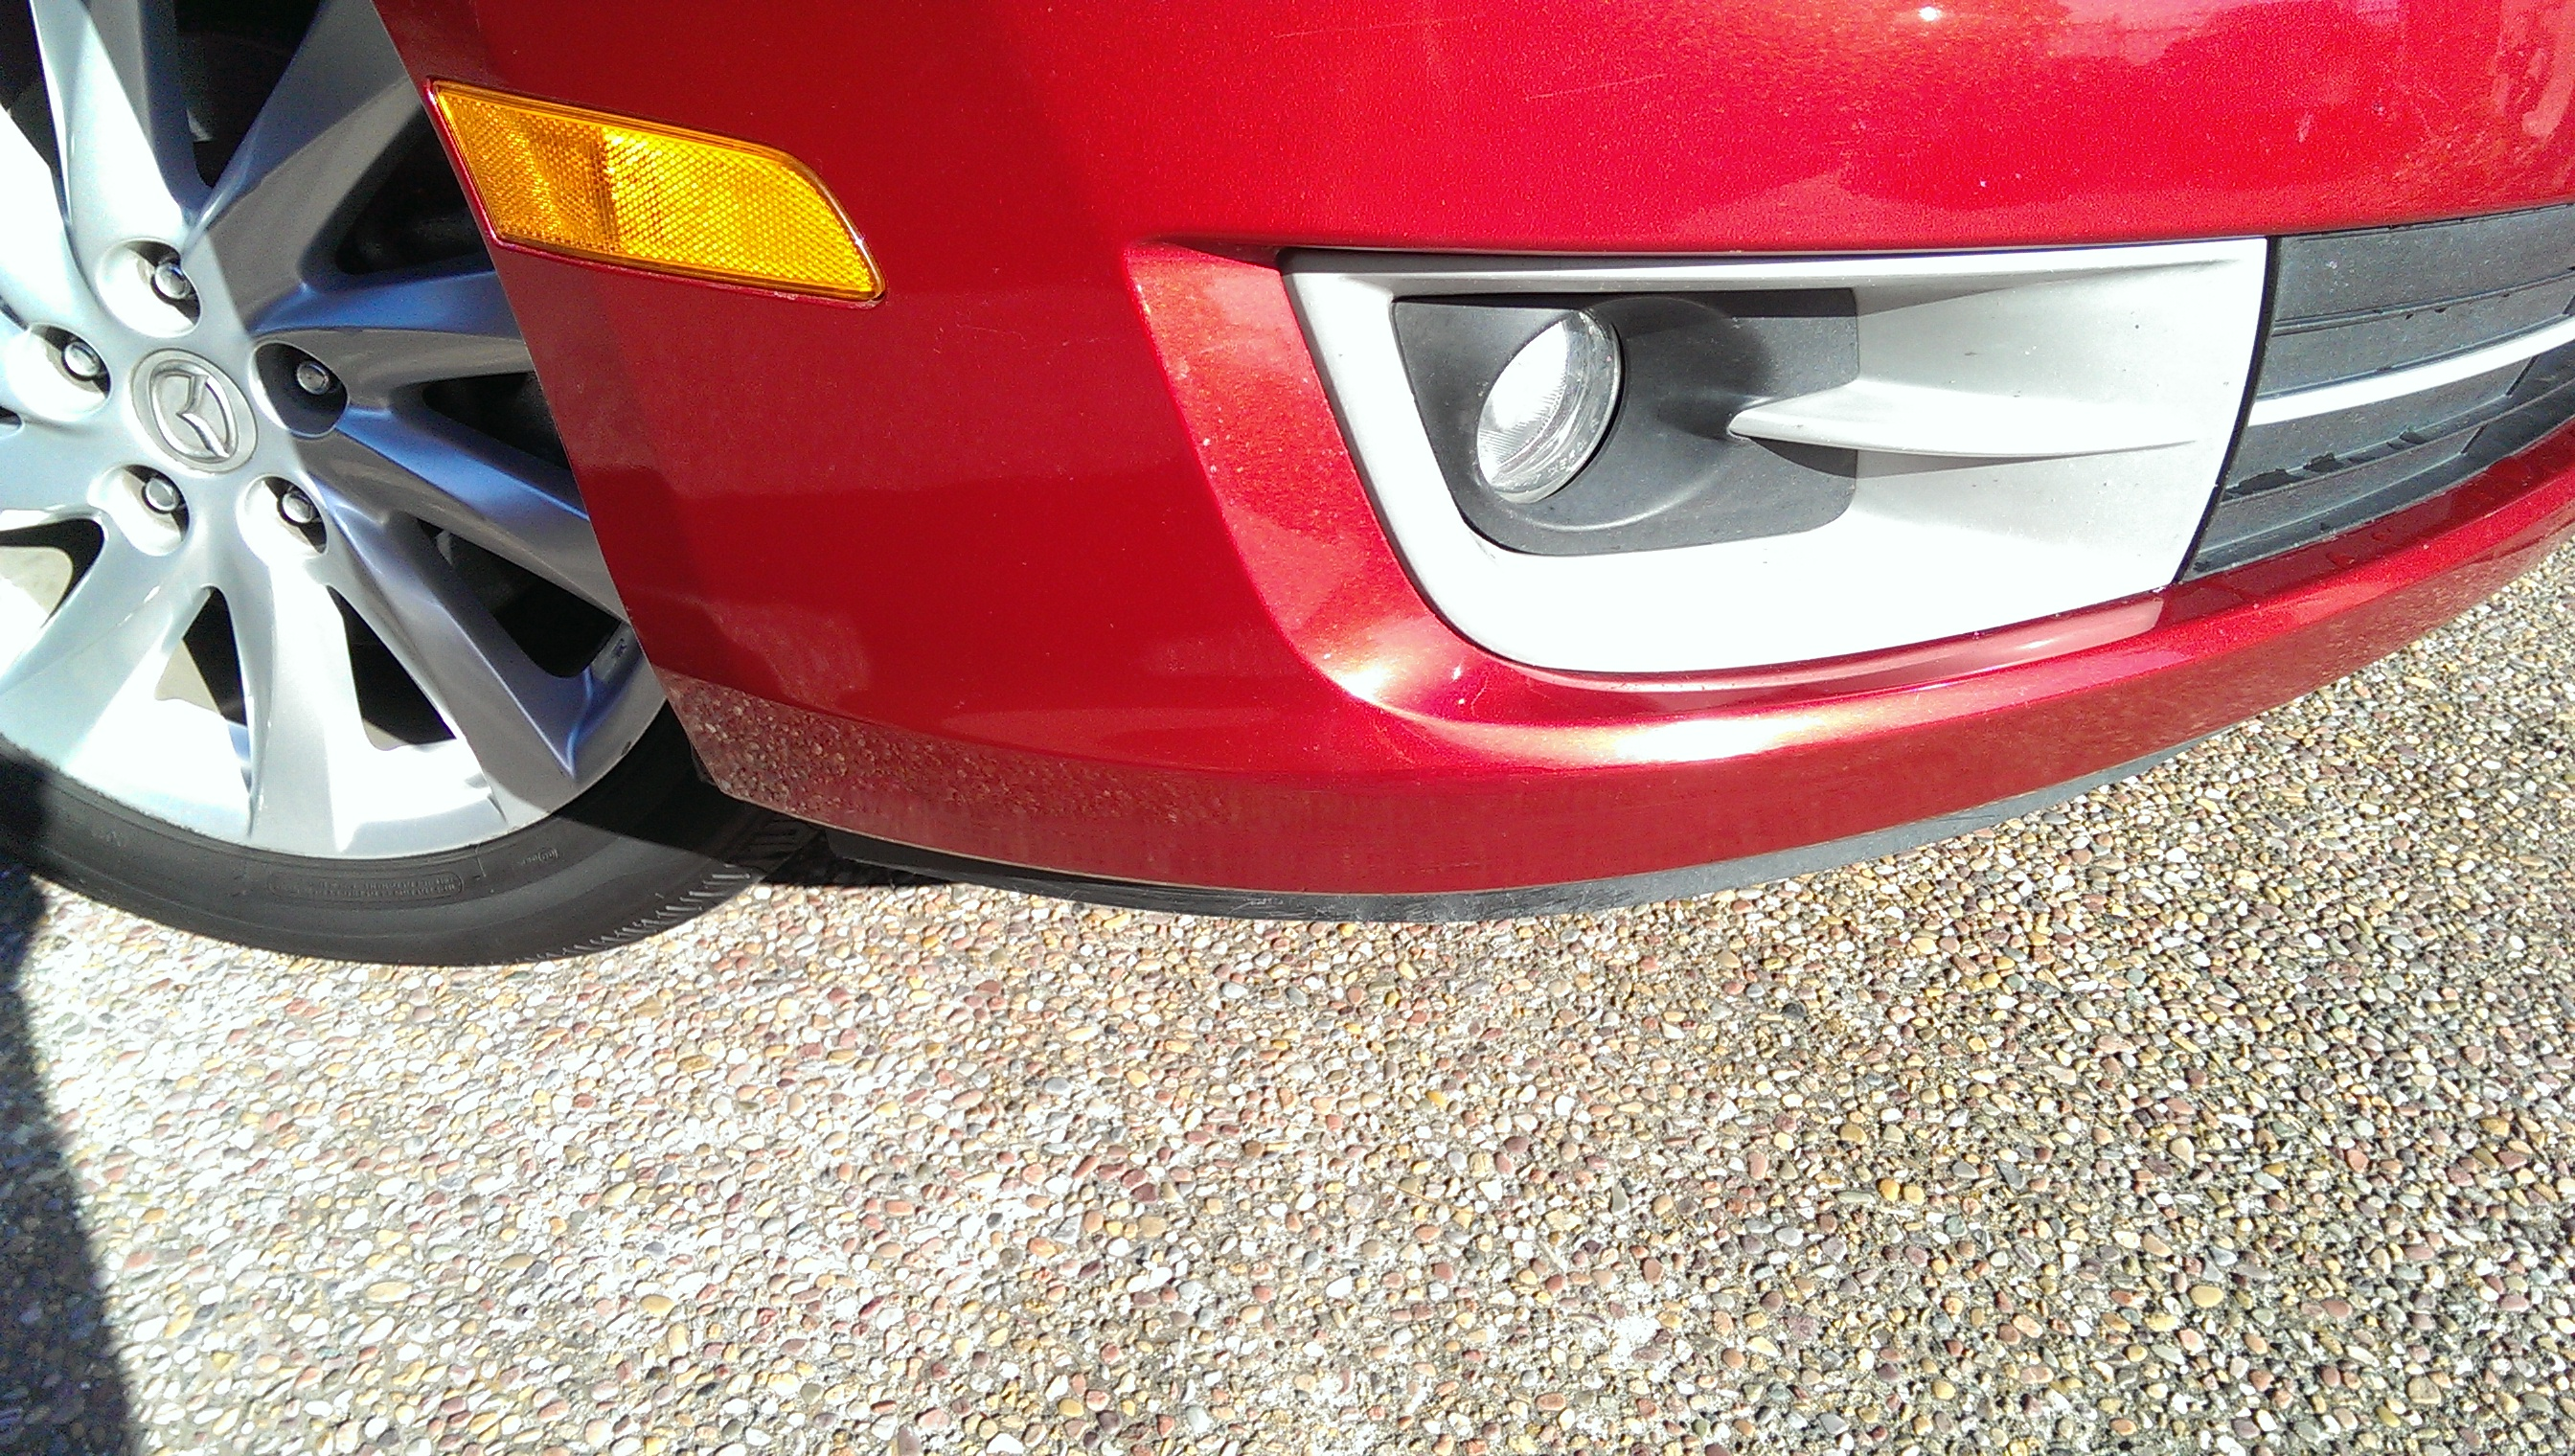 Mazda 6 Red  Front Bumper Scrape - After